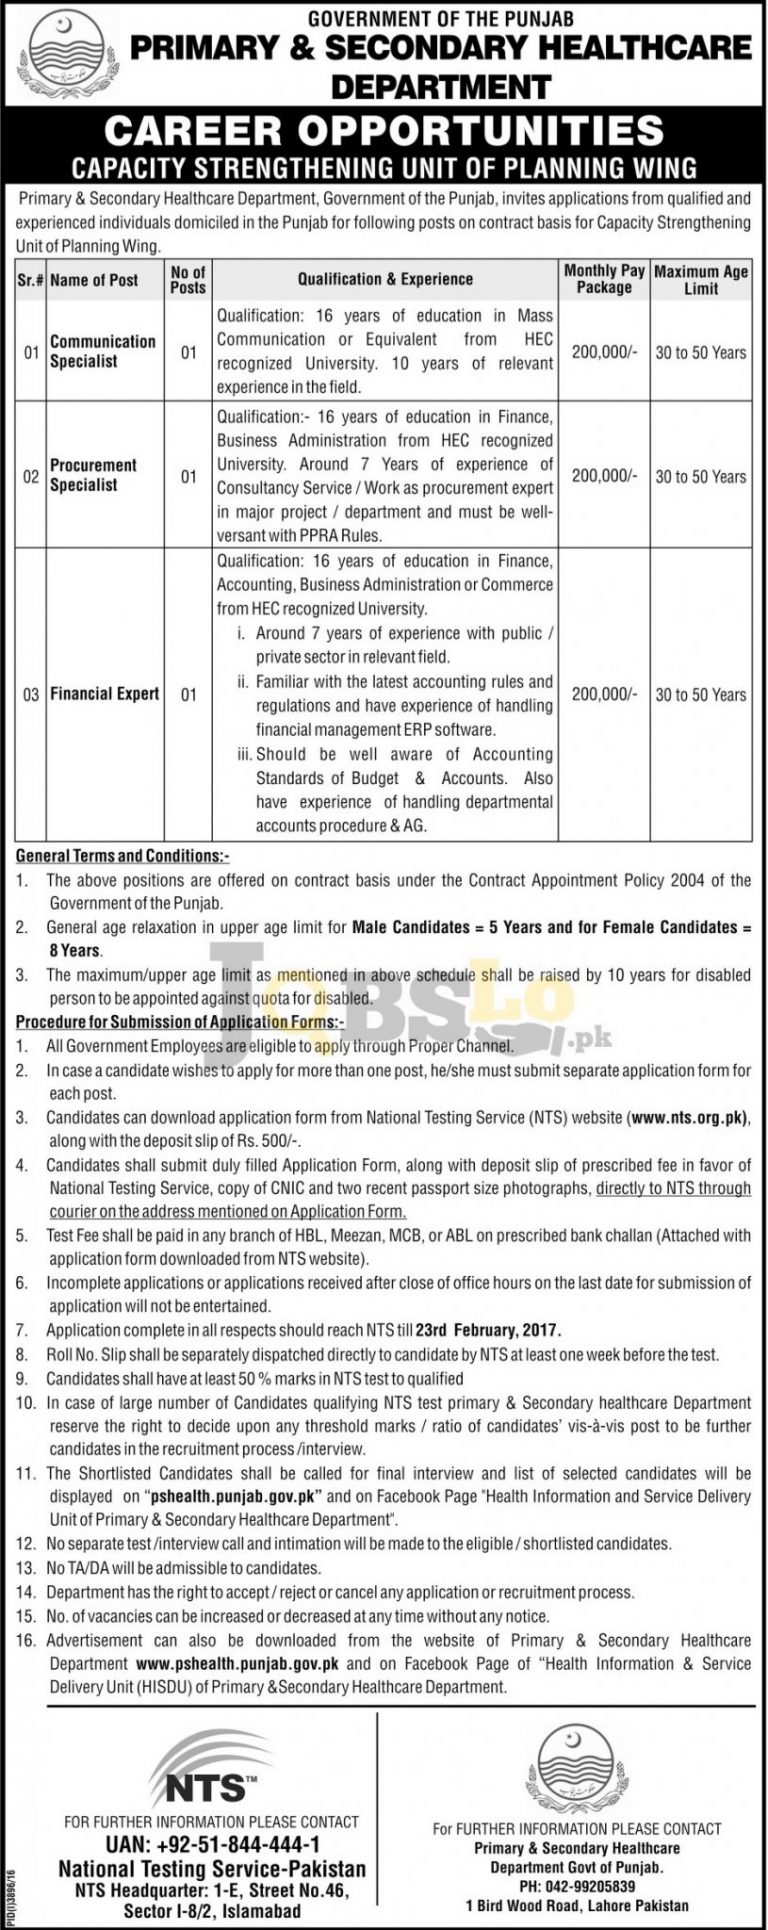 Primary and Secondary Healthcare Department Punjab Jobs 2017 NTS Form & Test Date